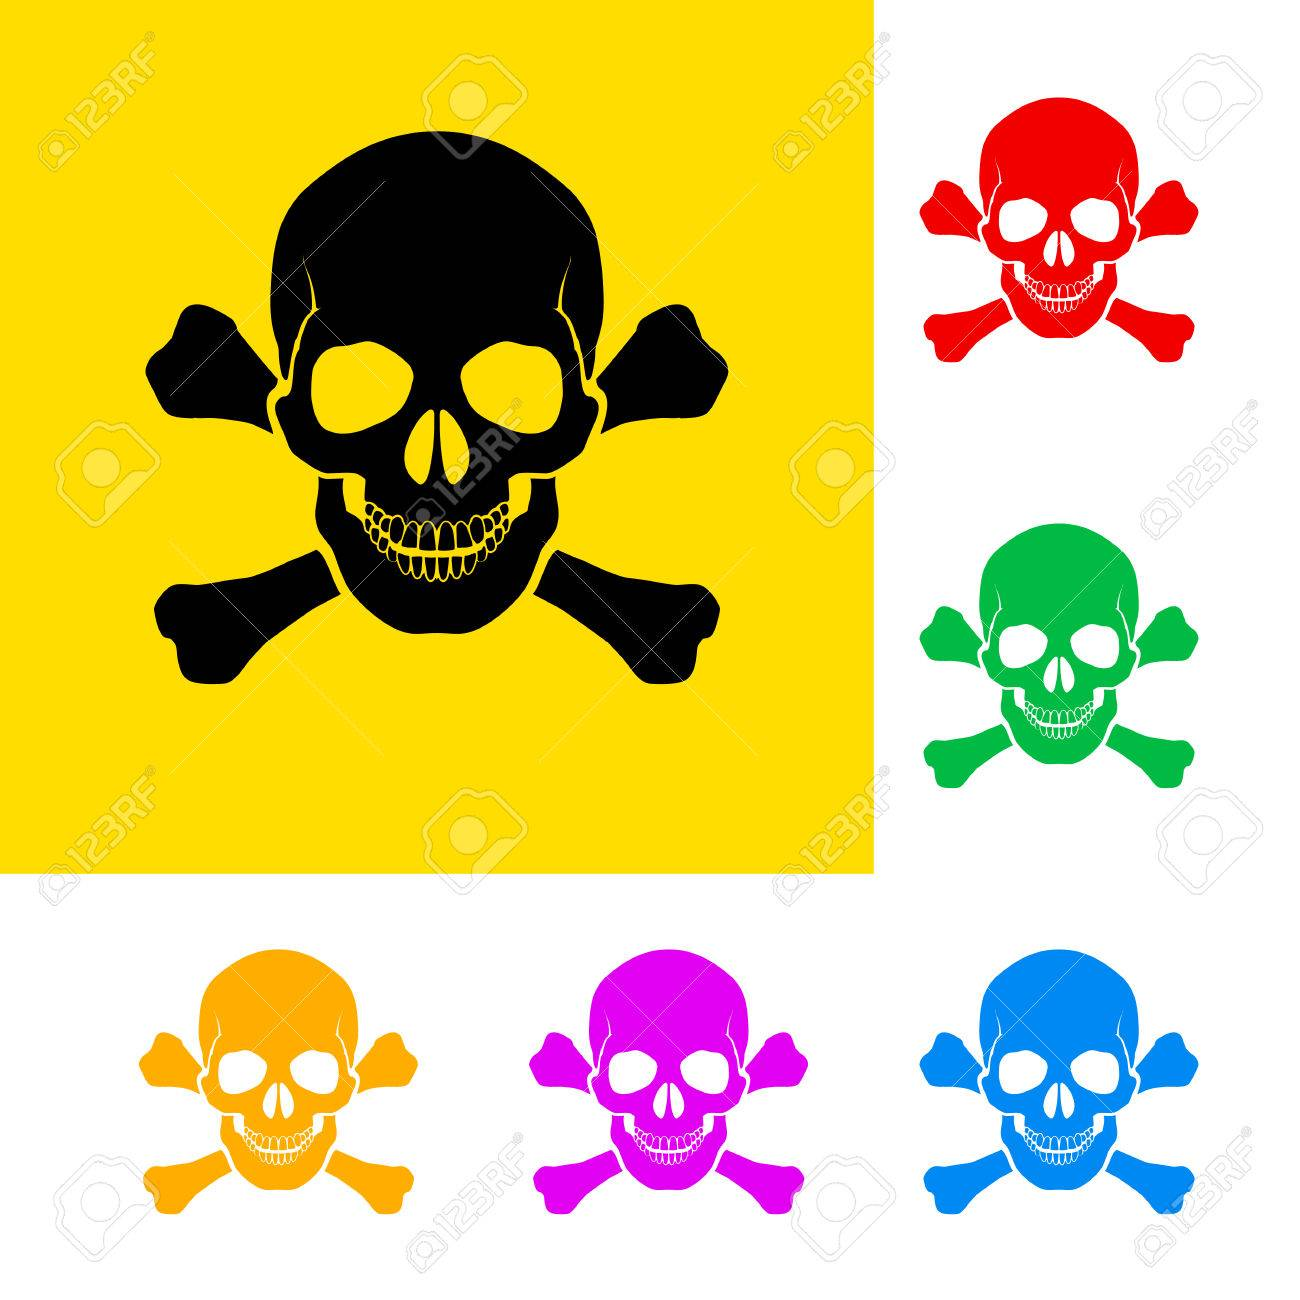 Danger sign of skull and cross bones with color variations. Stock Vector - 23684542